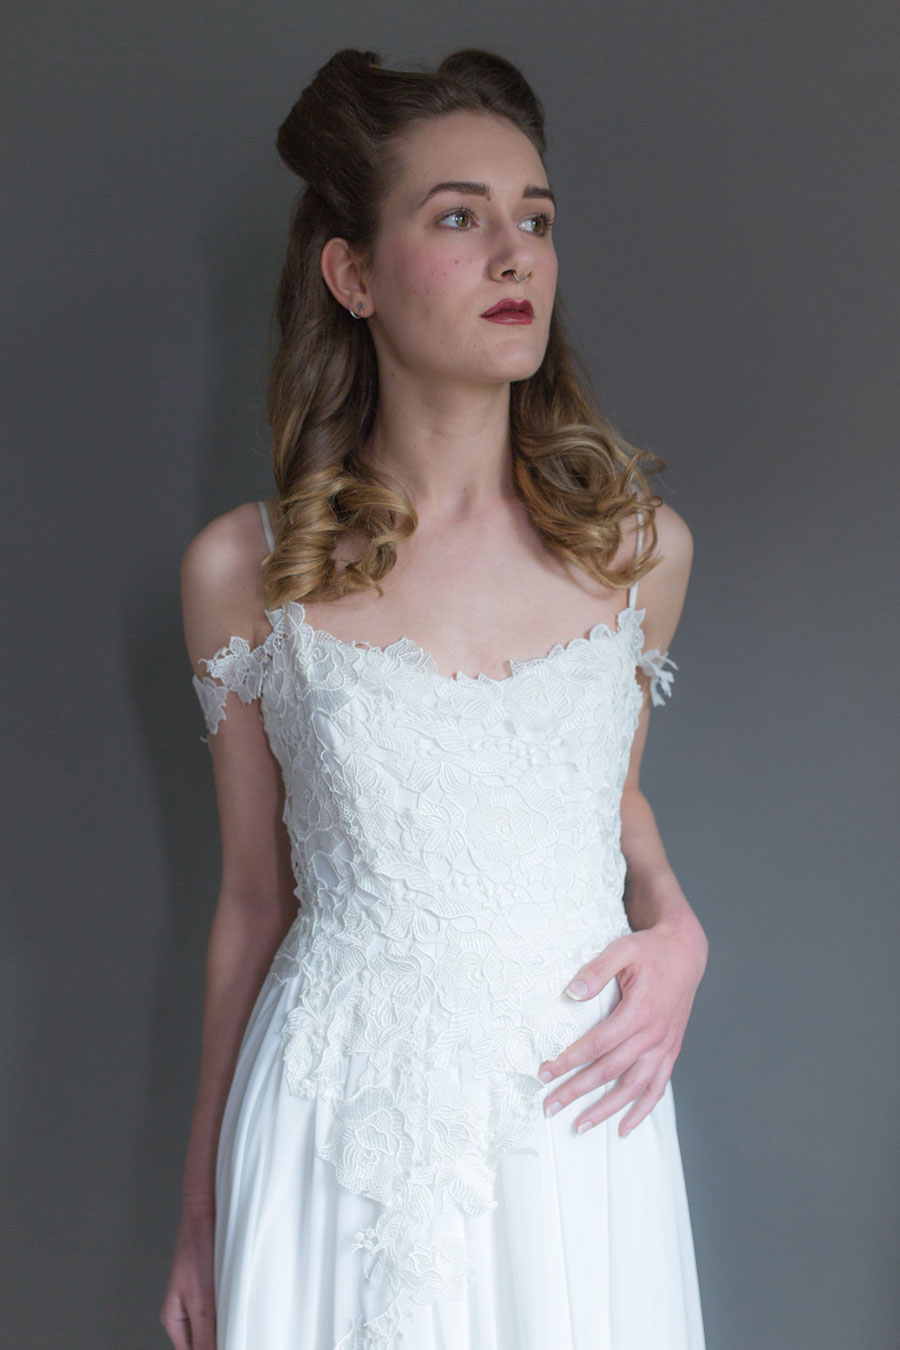 Quirky Wedding Dresses For Non-Traditional Brides- Lucy Can't Dance0008